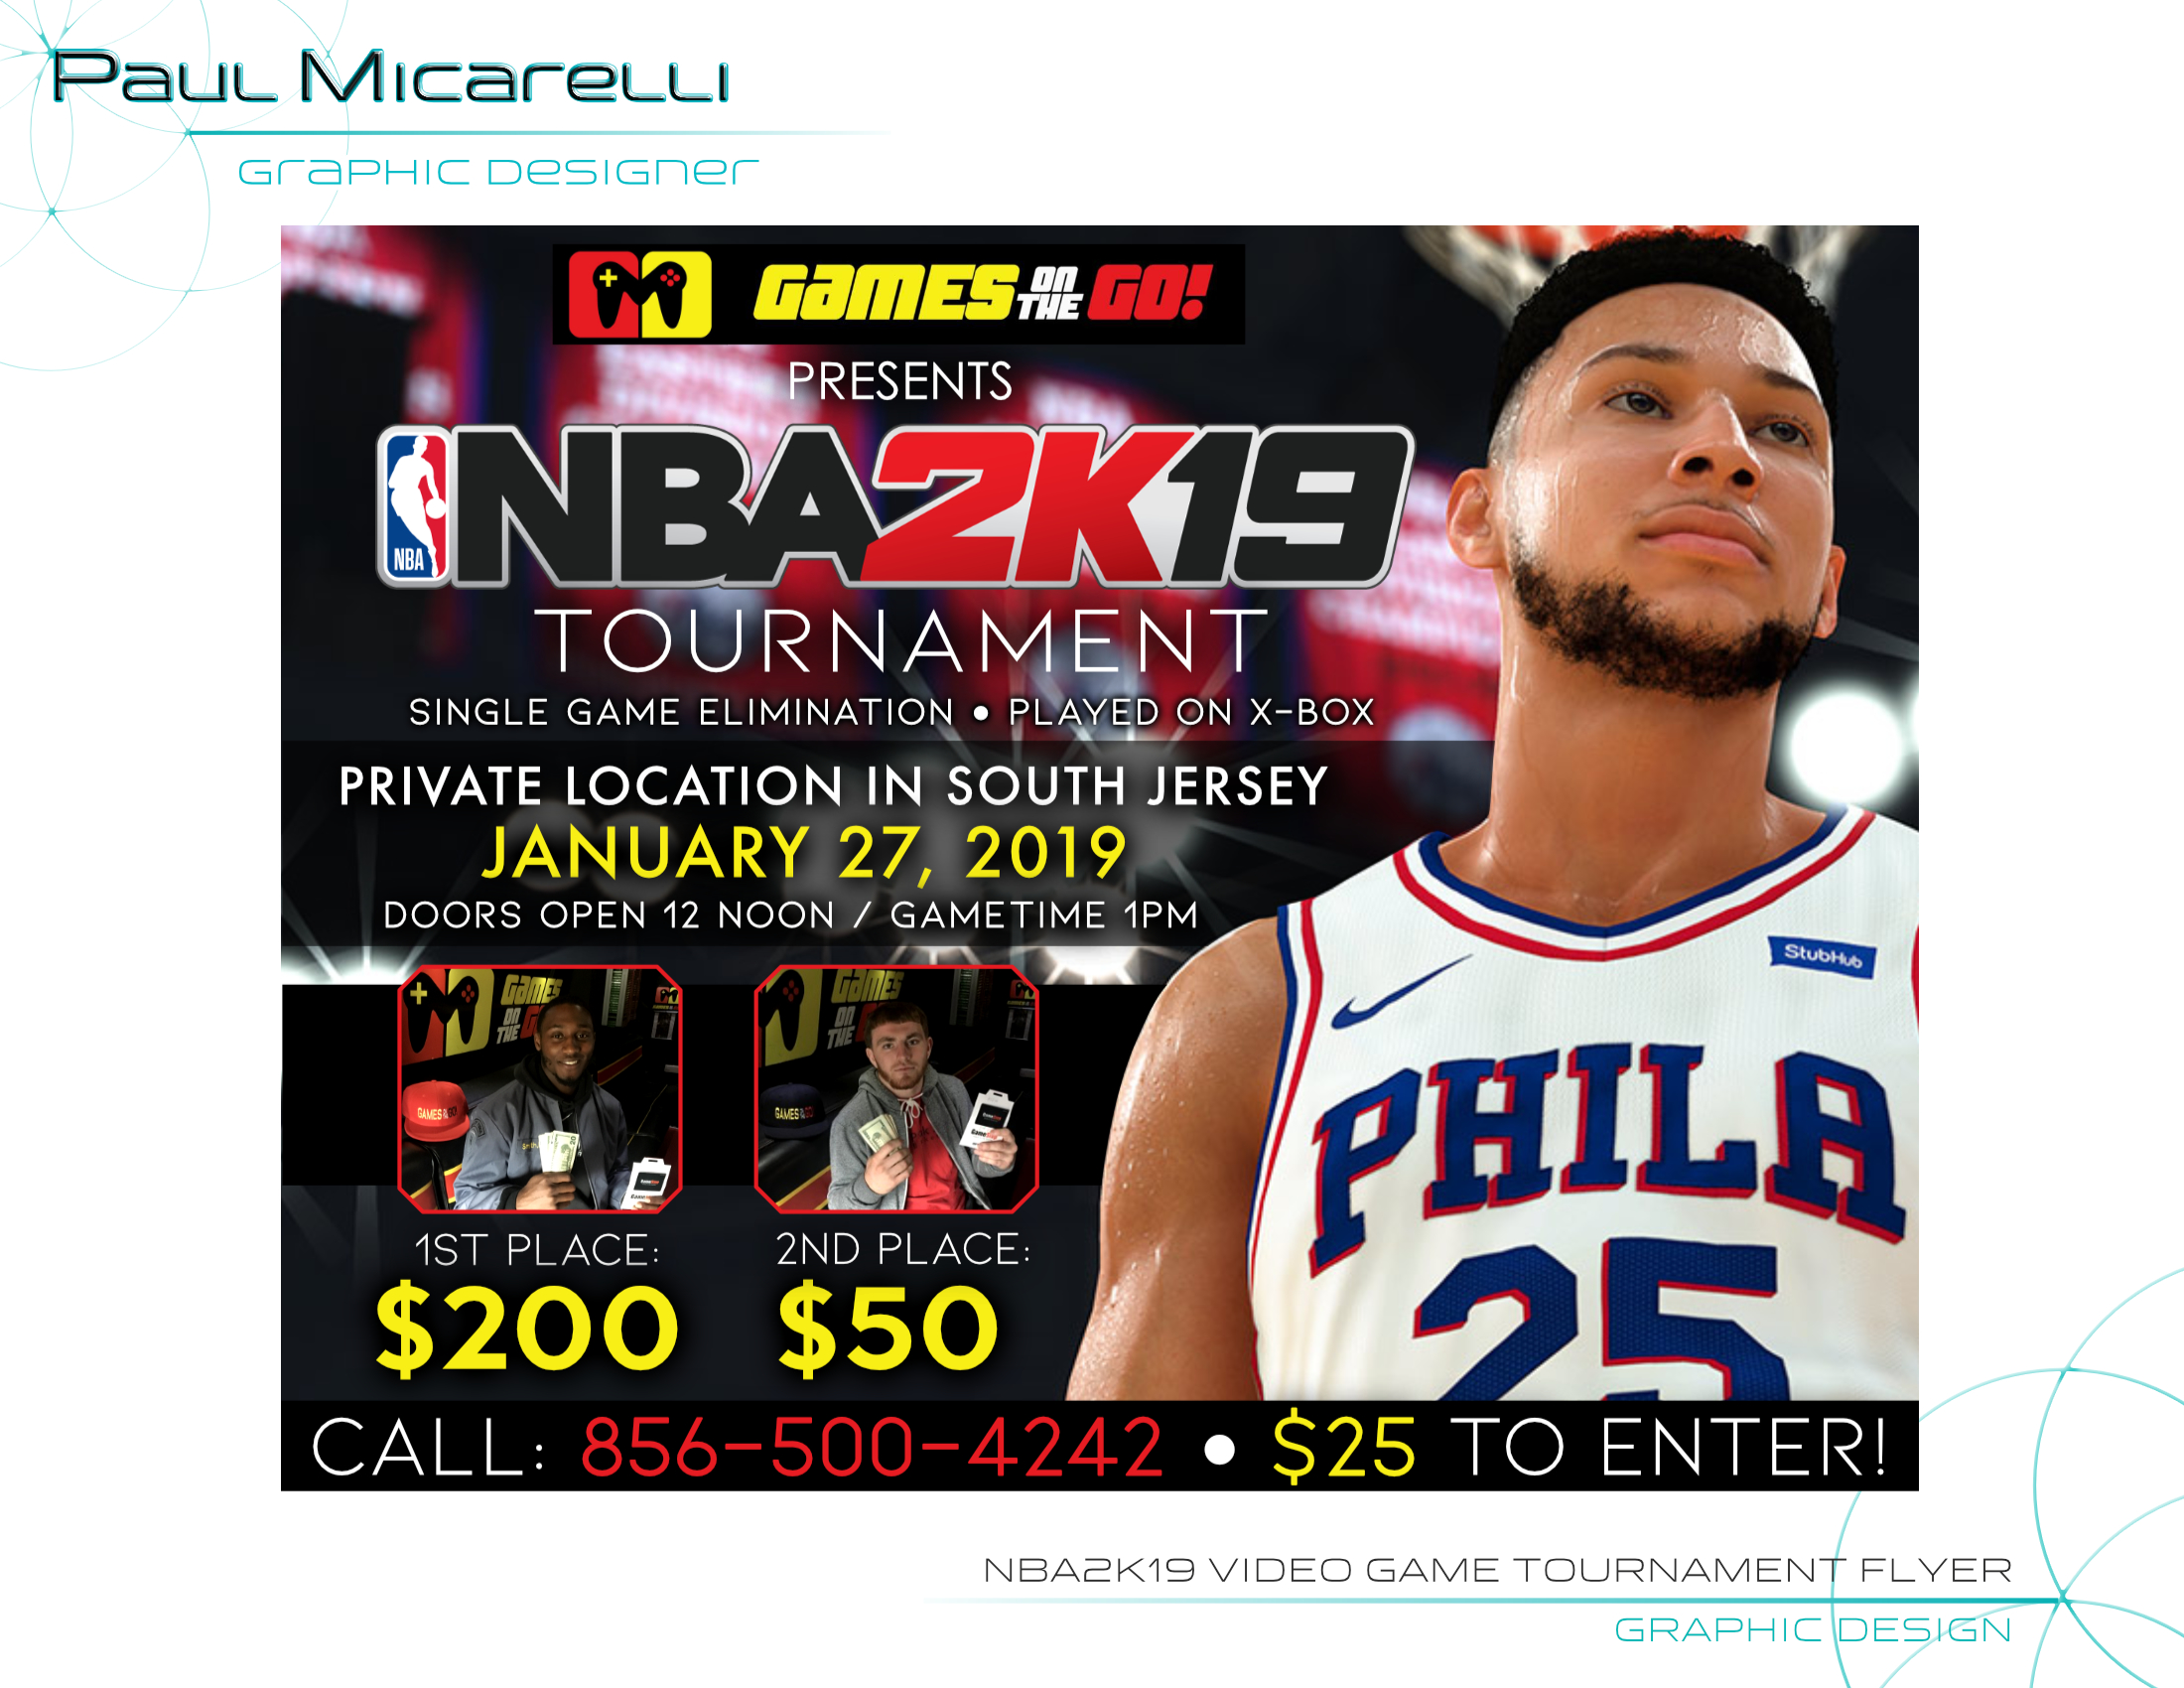 Paul-Micarelli-NBA2K19 Video Game Tourna